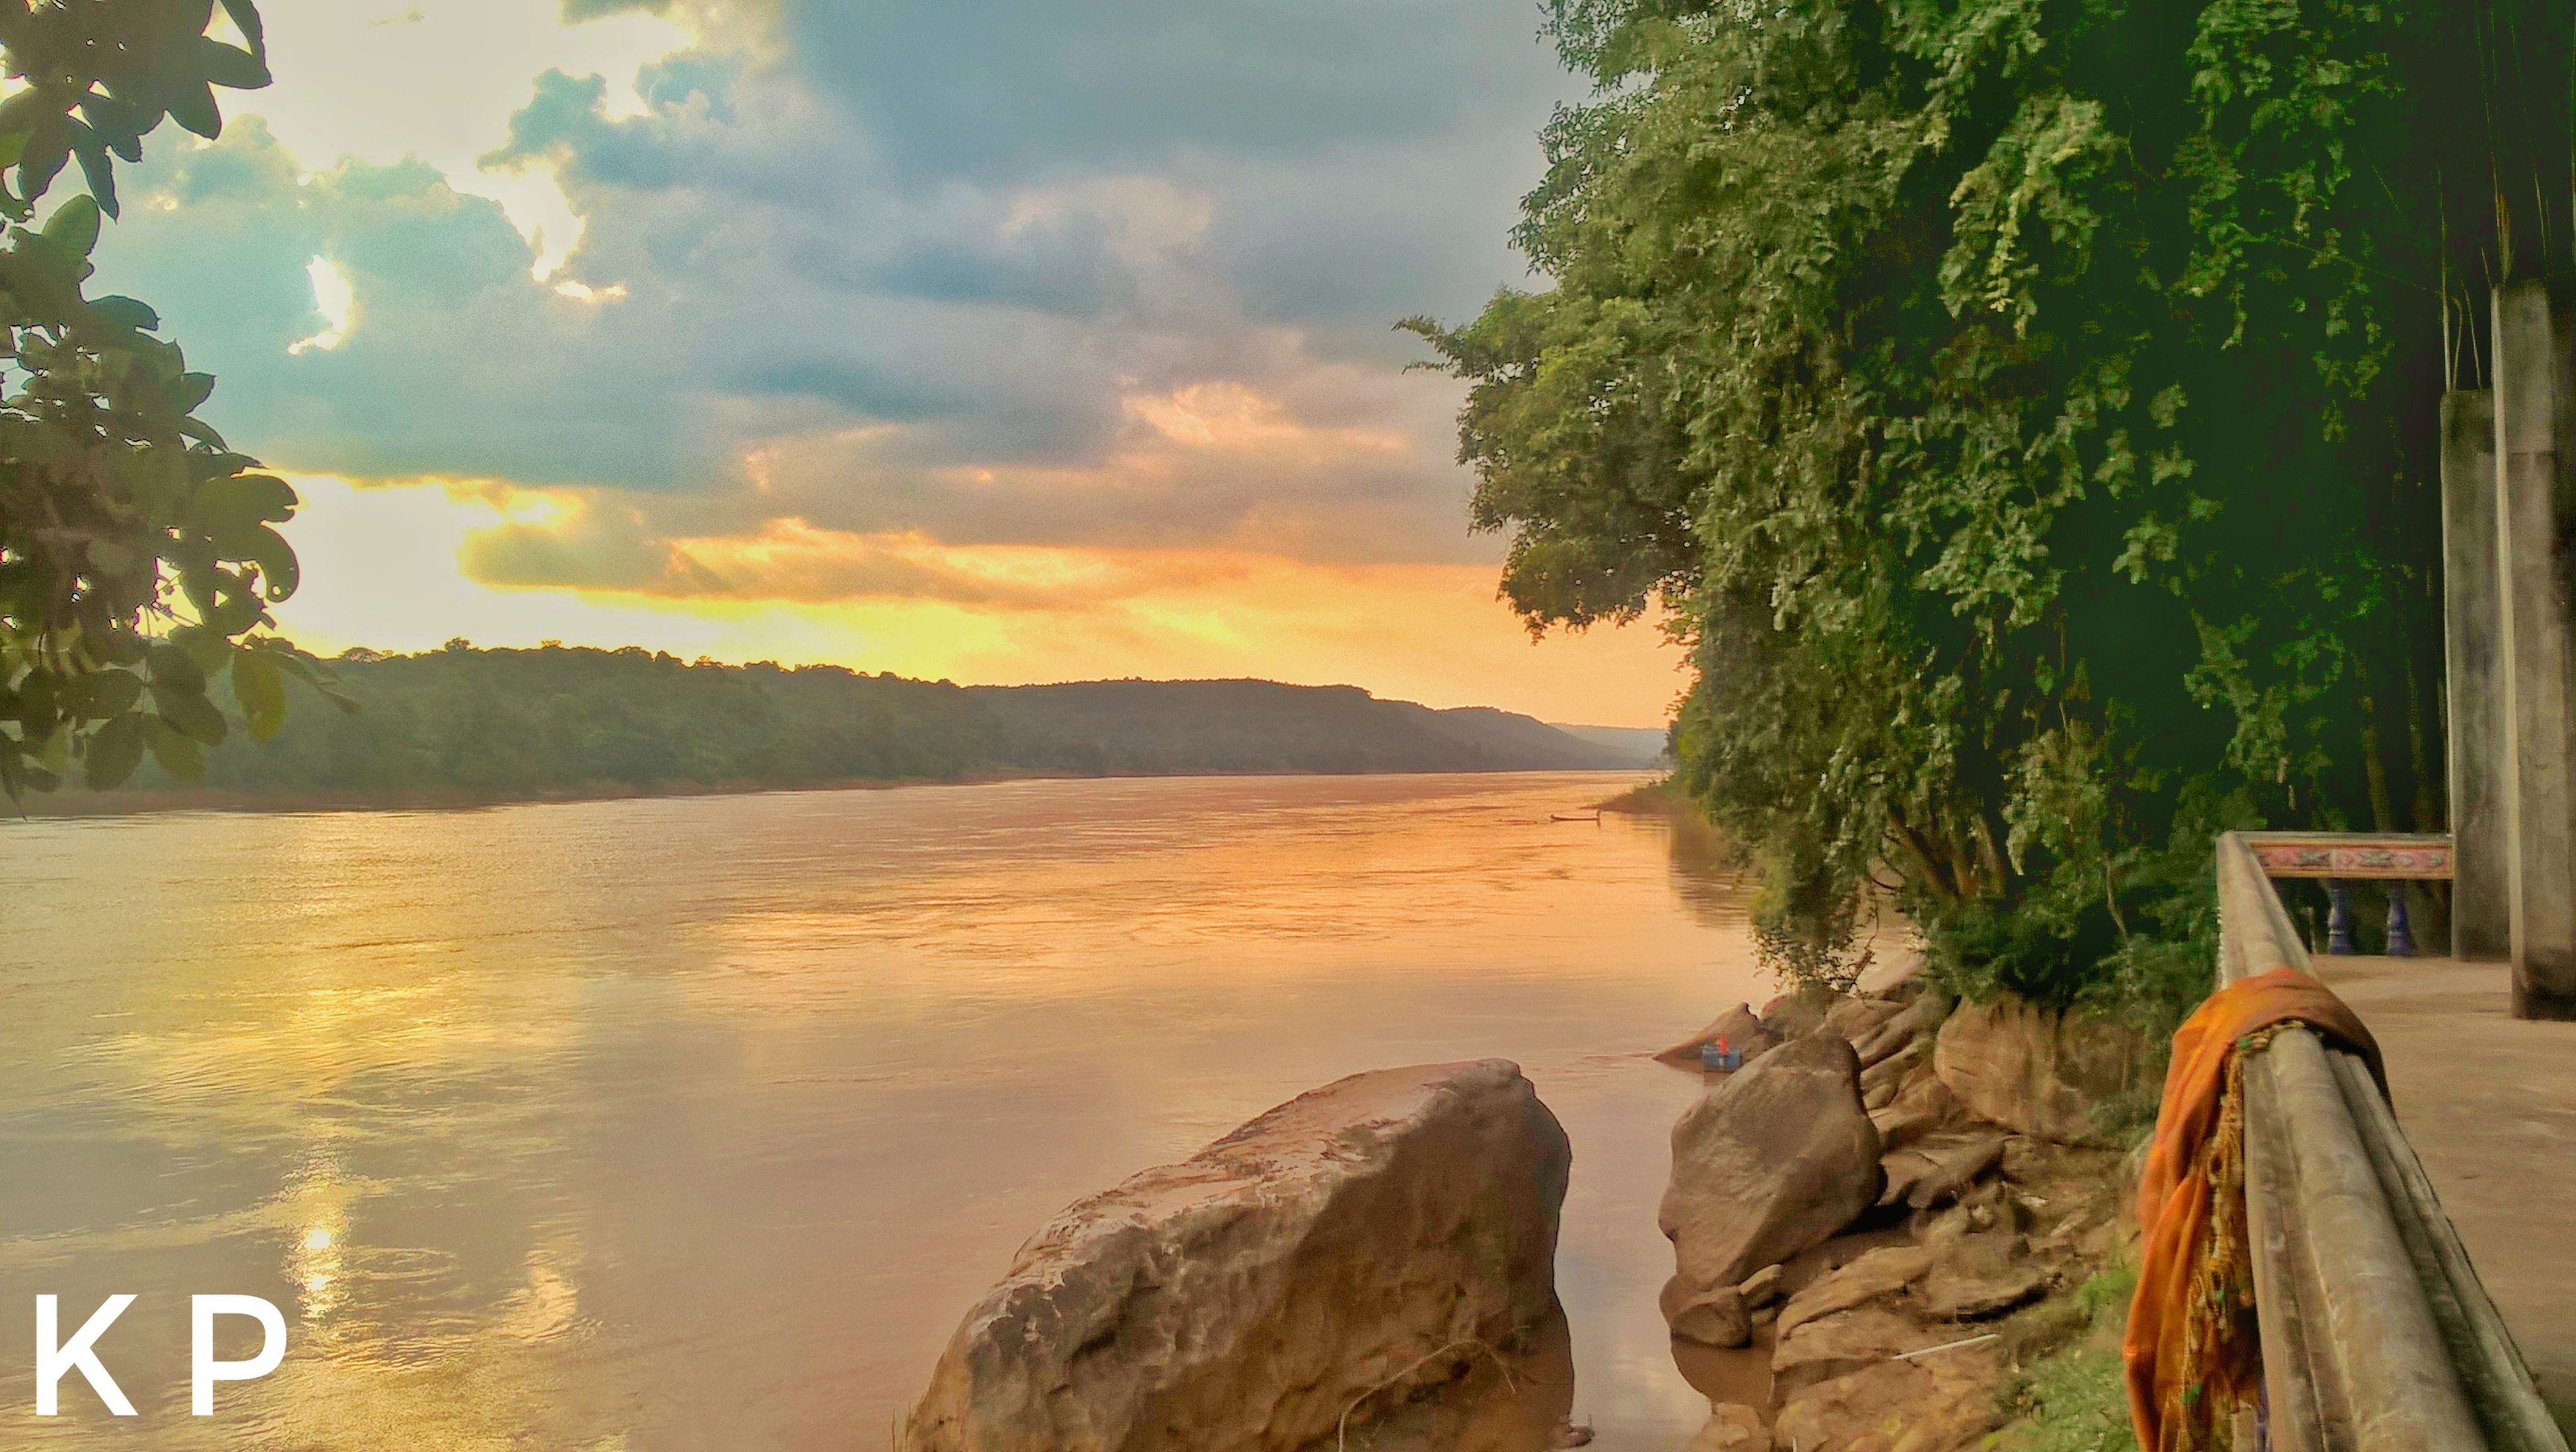 tree, scenics, nature, beauty in nature, mountain, sky, tranquil scene, water, tranquility, no people, sea, outdoors, growth, sunset, landscape, day